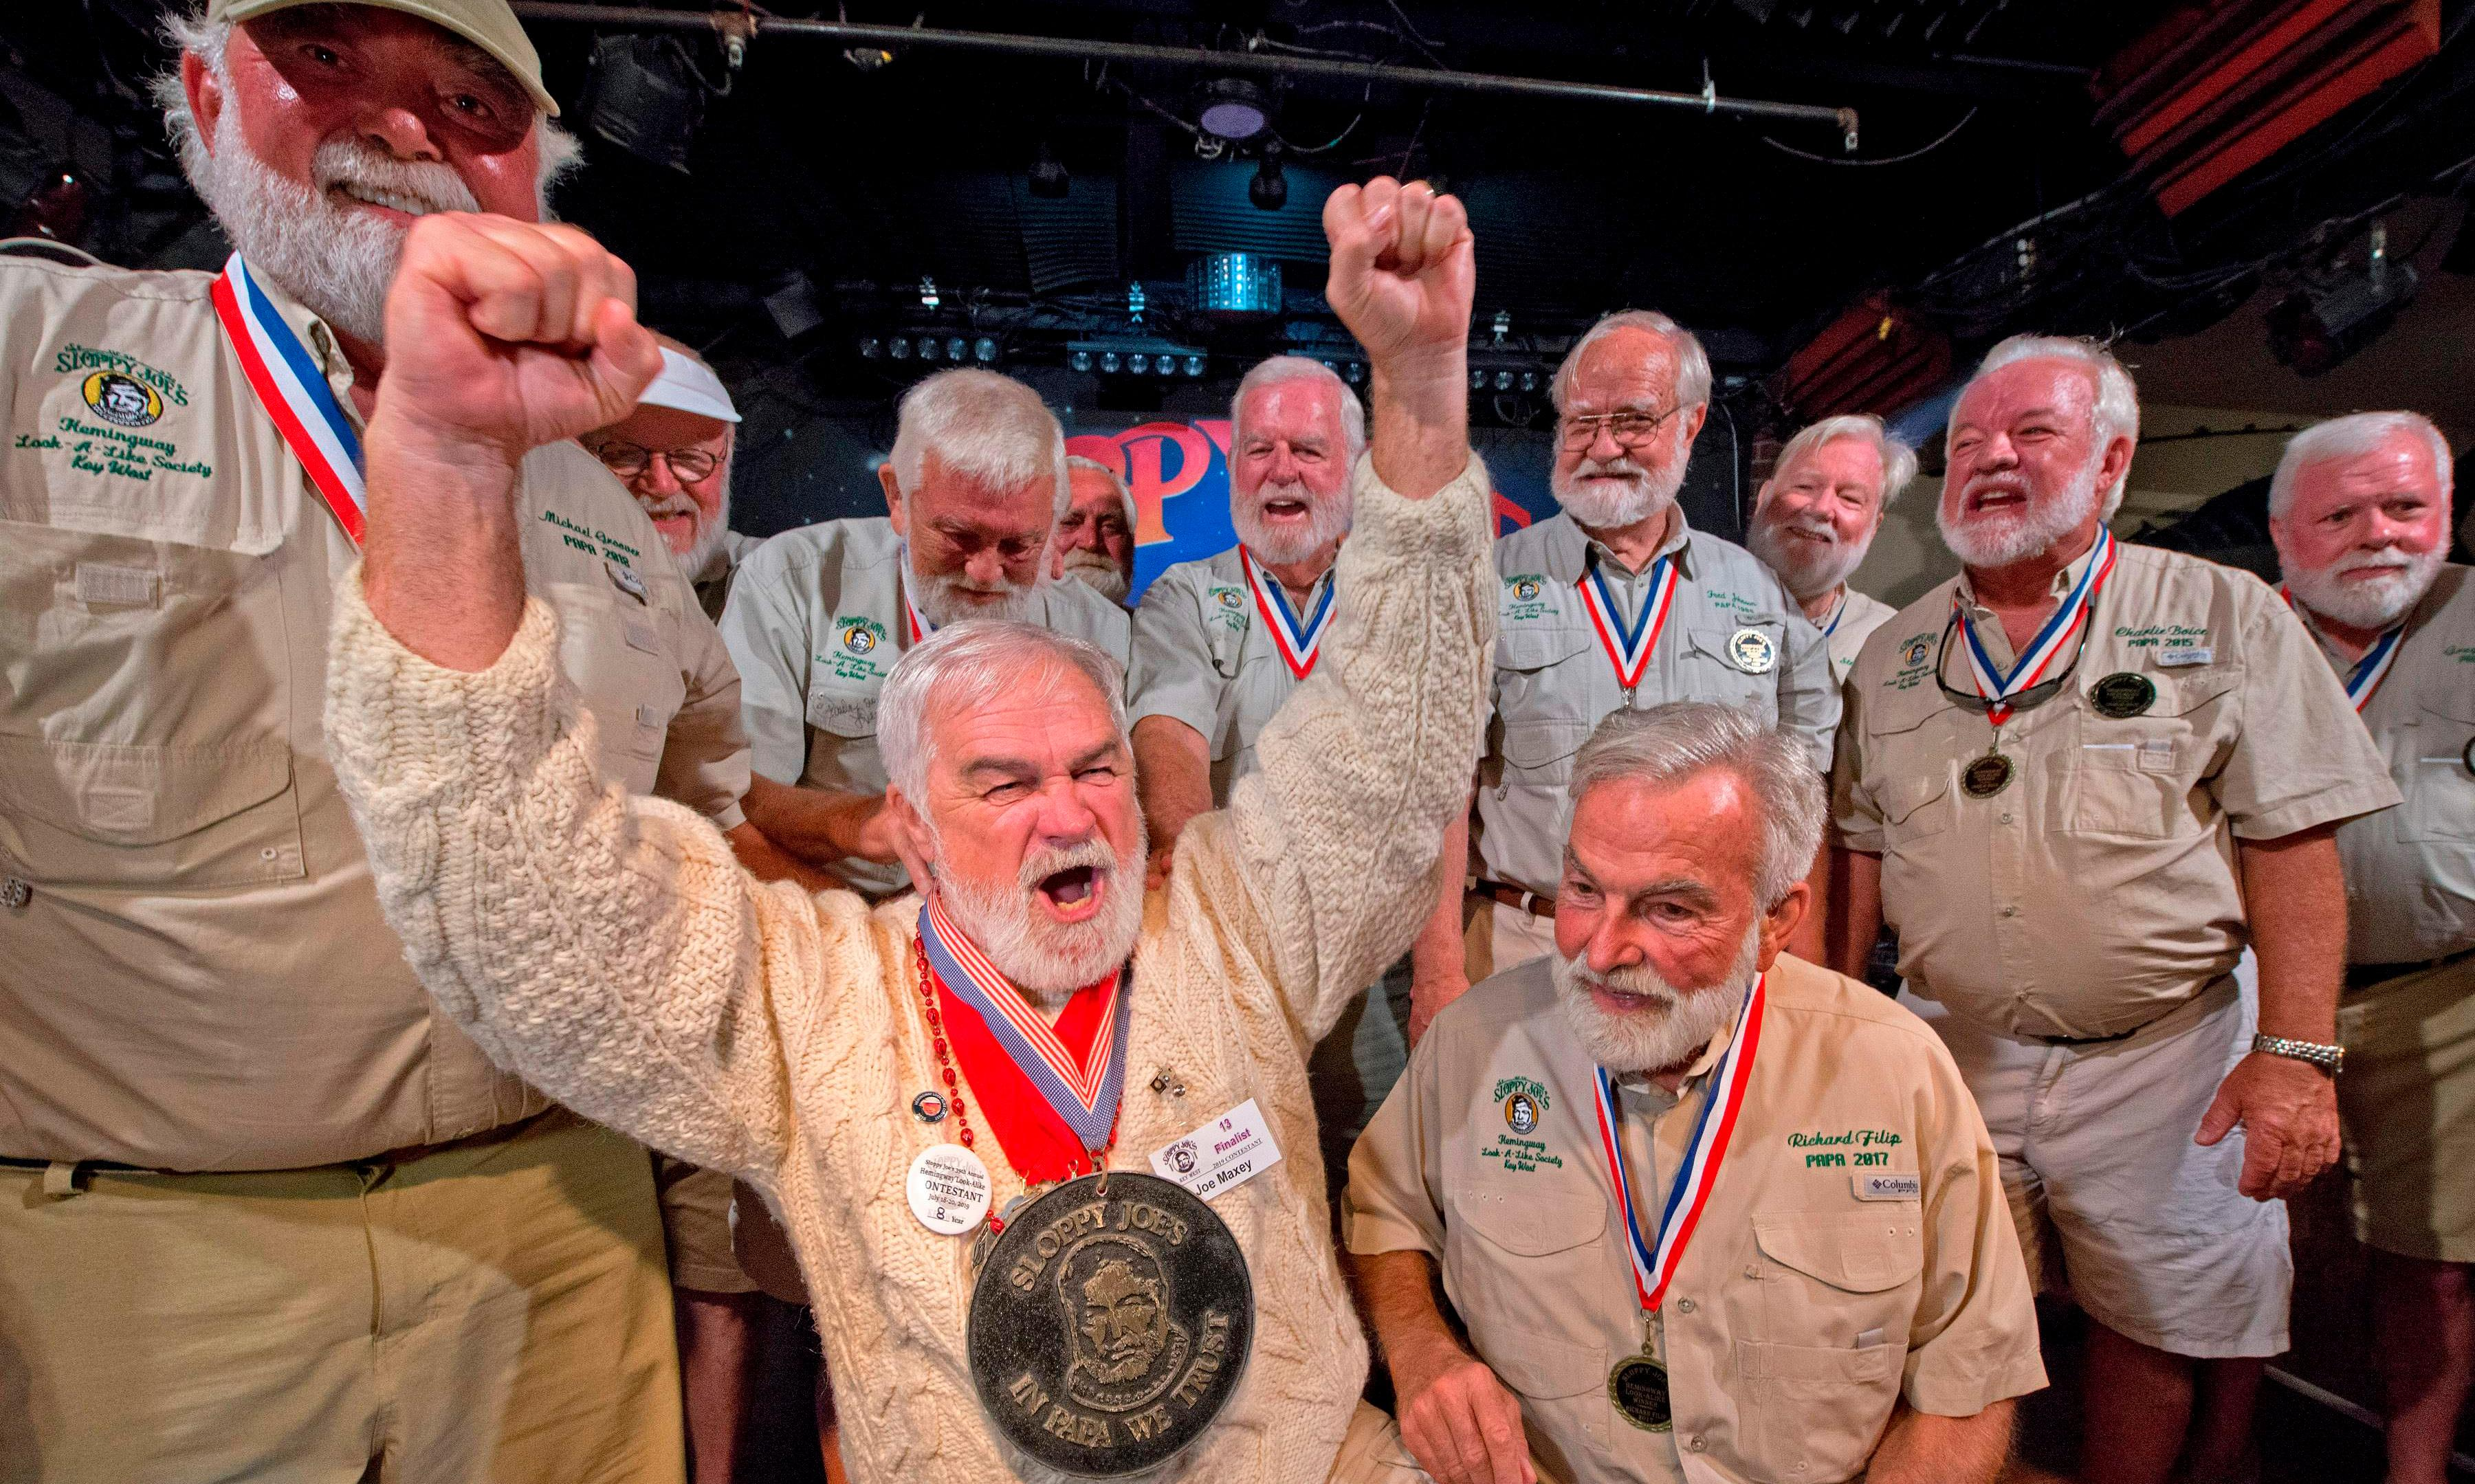 Old men by the sea: Tennessee banker takes Hemingway lookalike contest